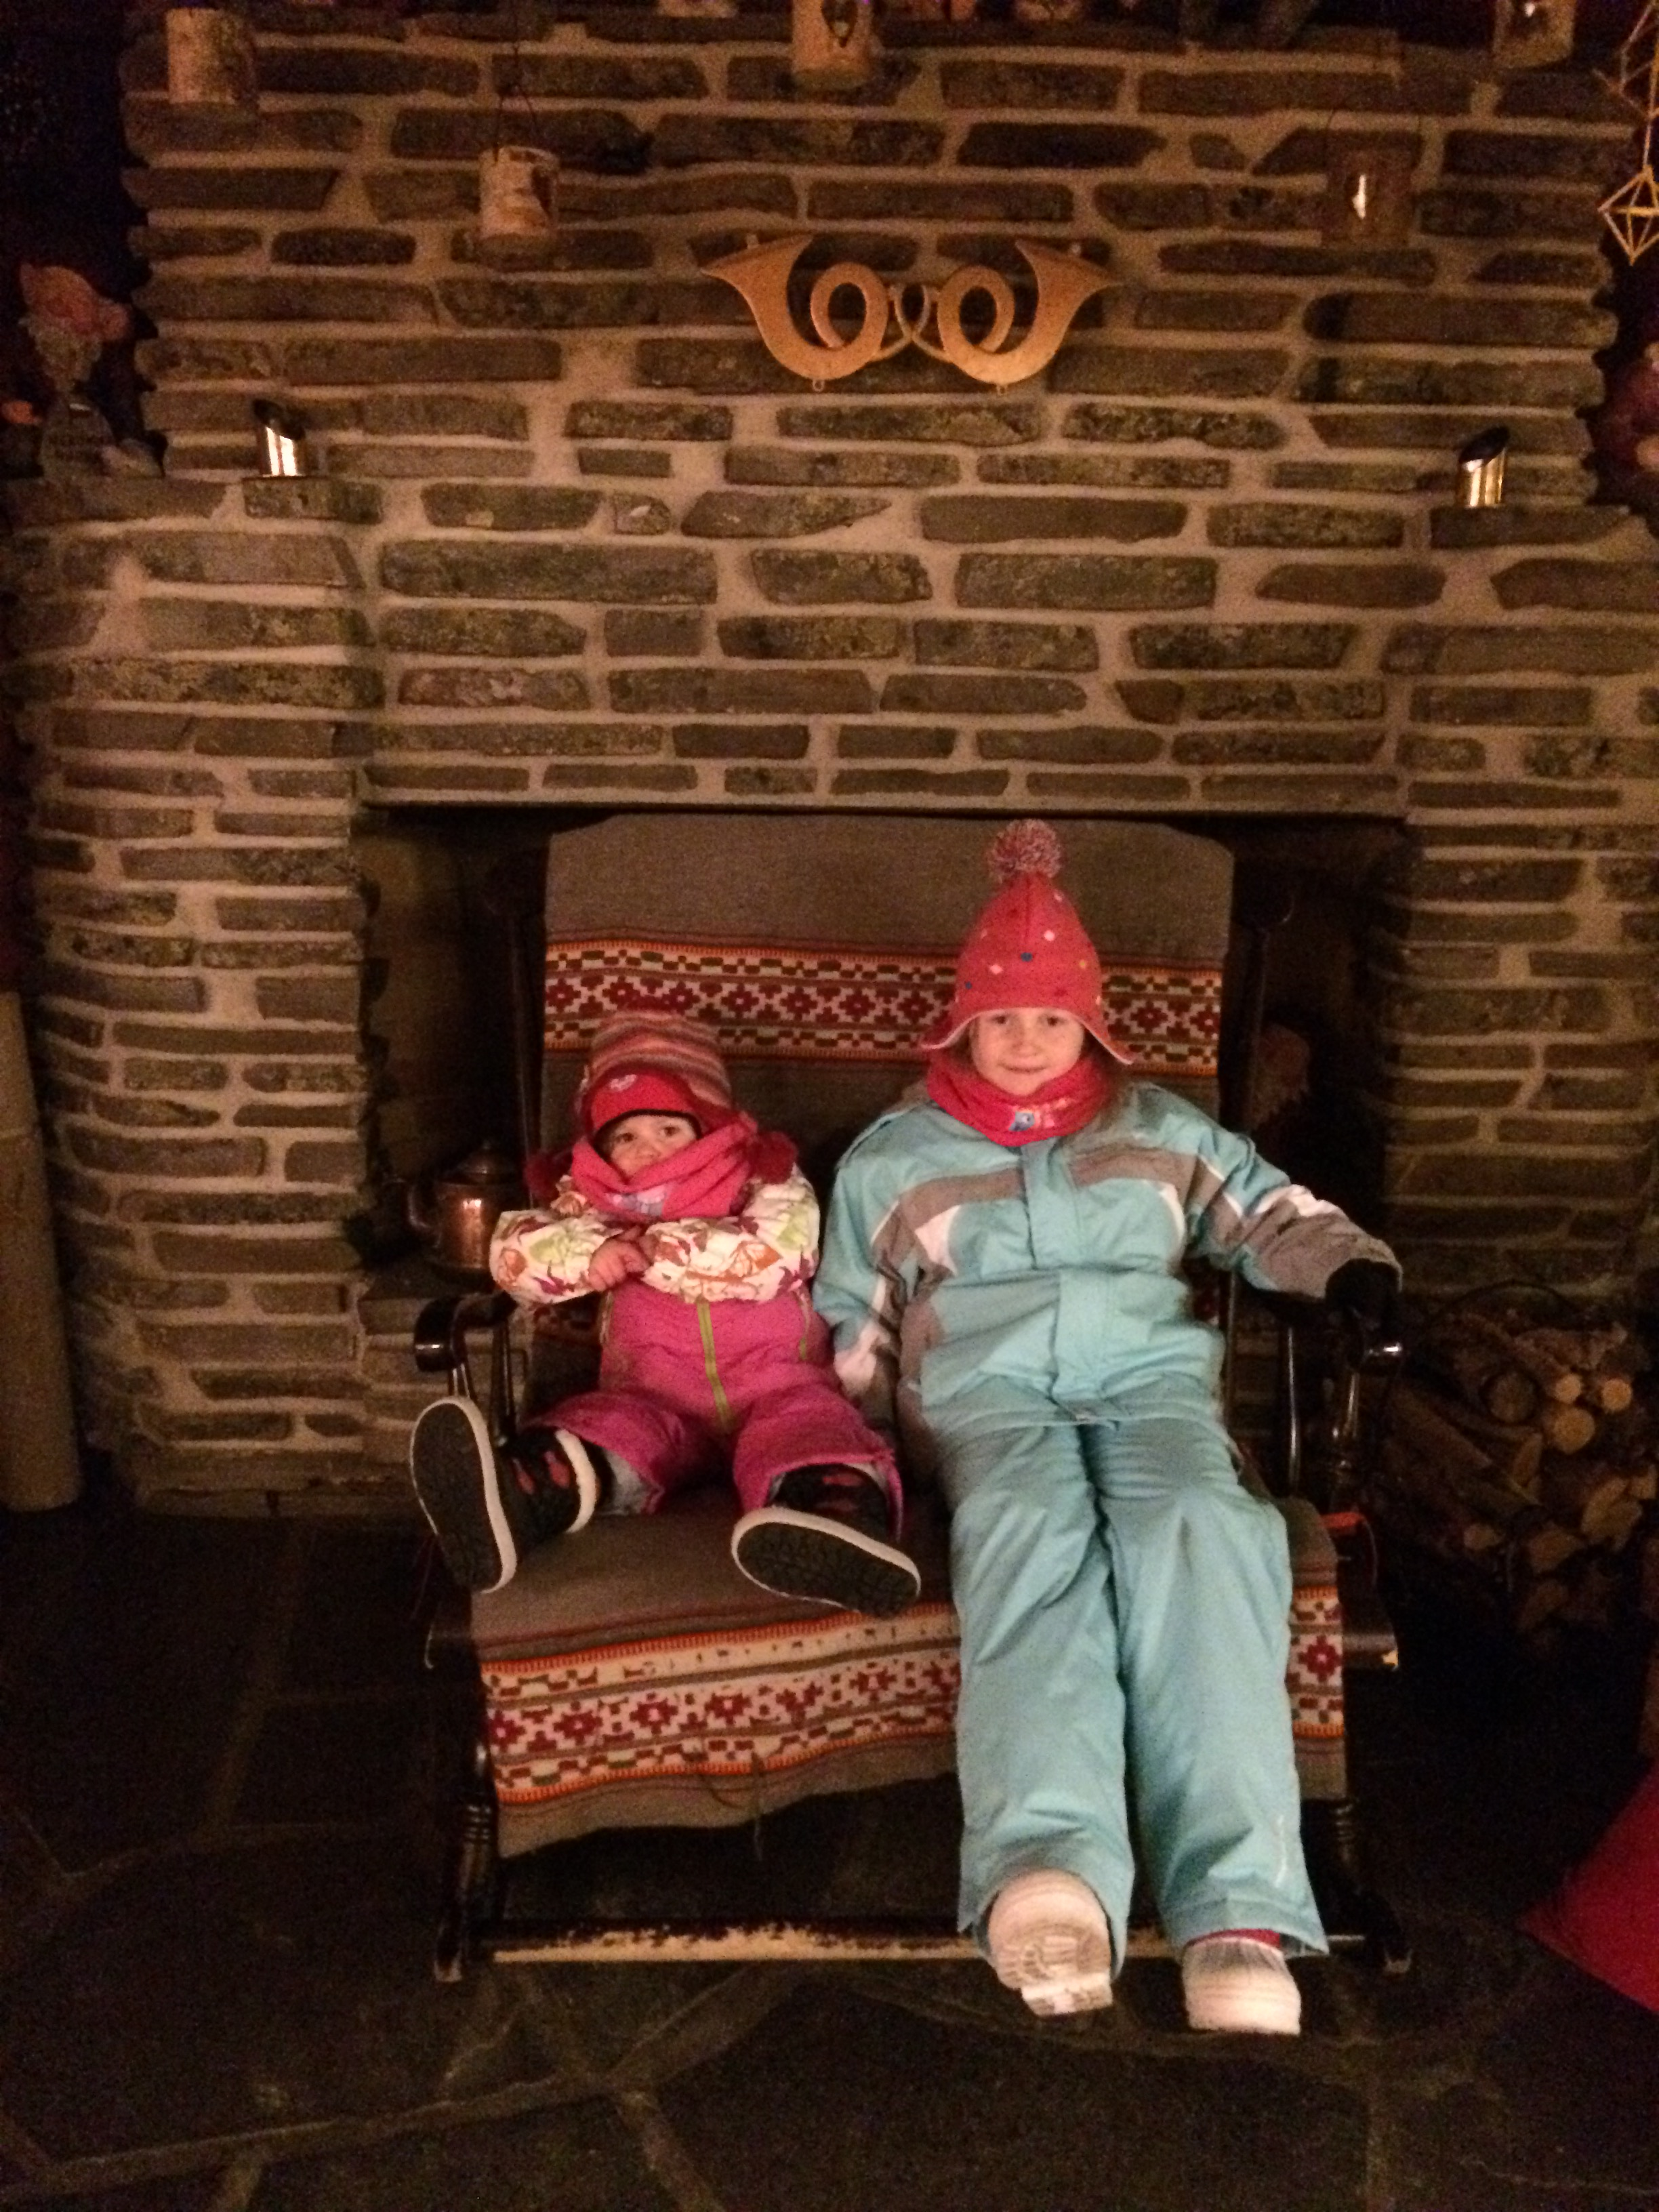 Lily-Belle and Matilda take time out on Santa's chair